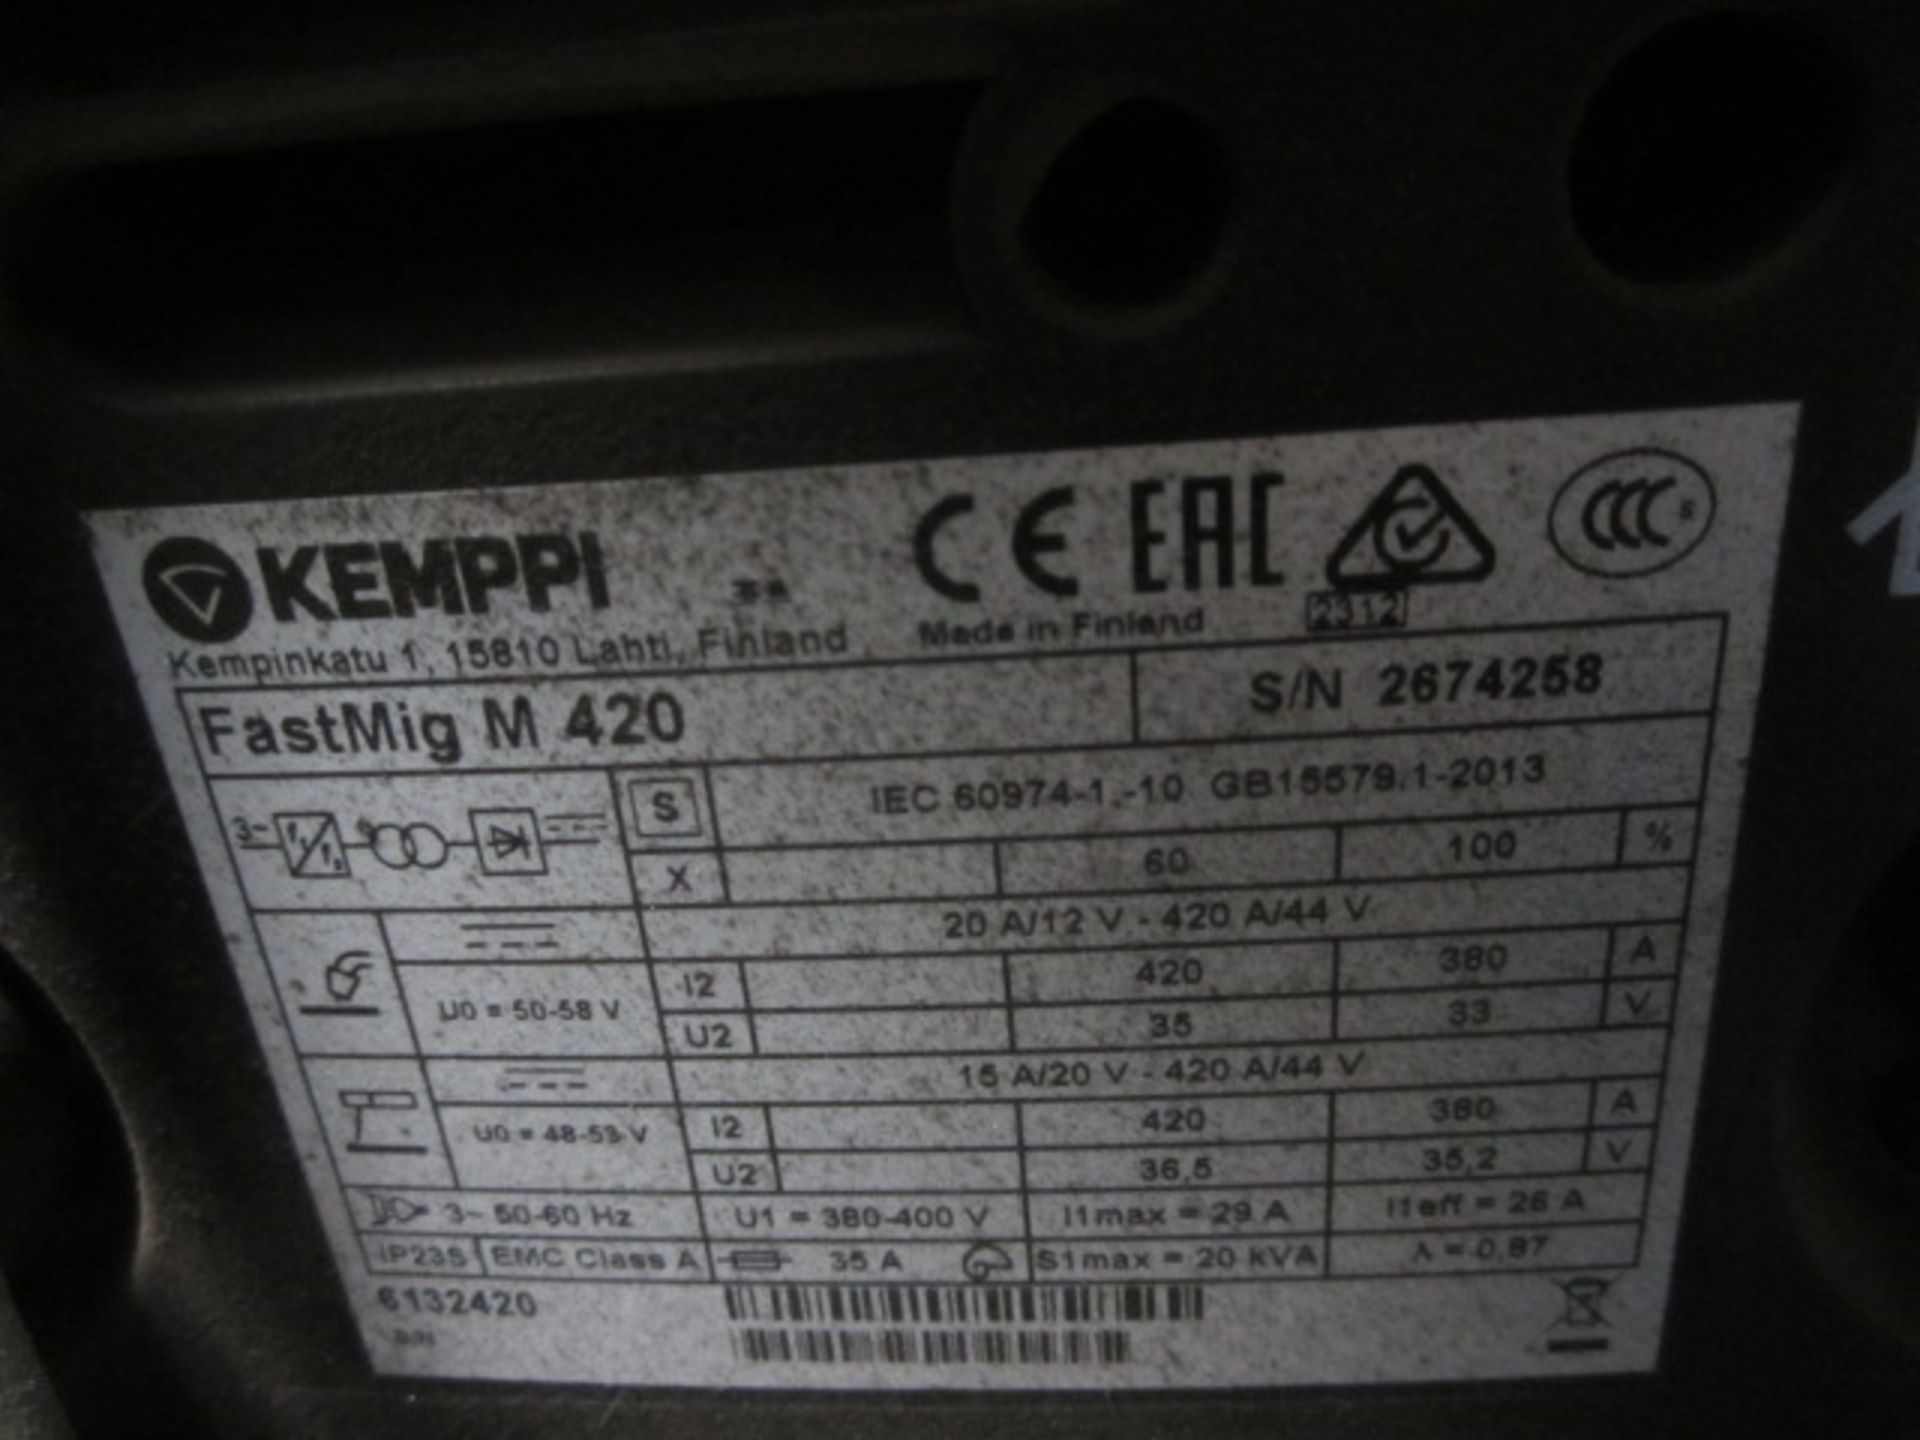 Kemppi Fast Mig M420 mig welder, serial no. 2674258, with Fast Mig MXF65 wire feeder, serial no. - Image 8 of 8